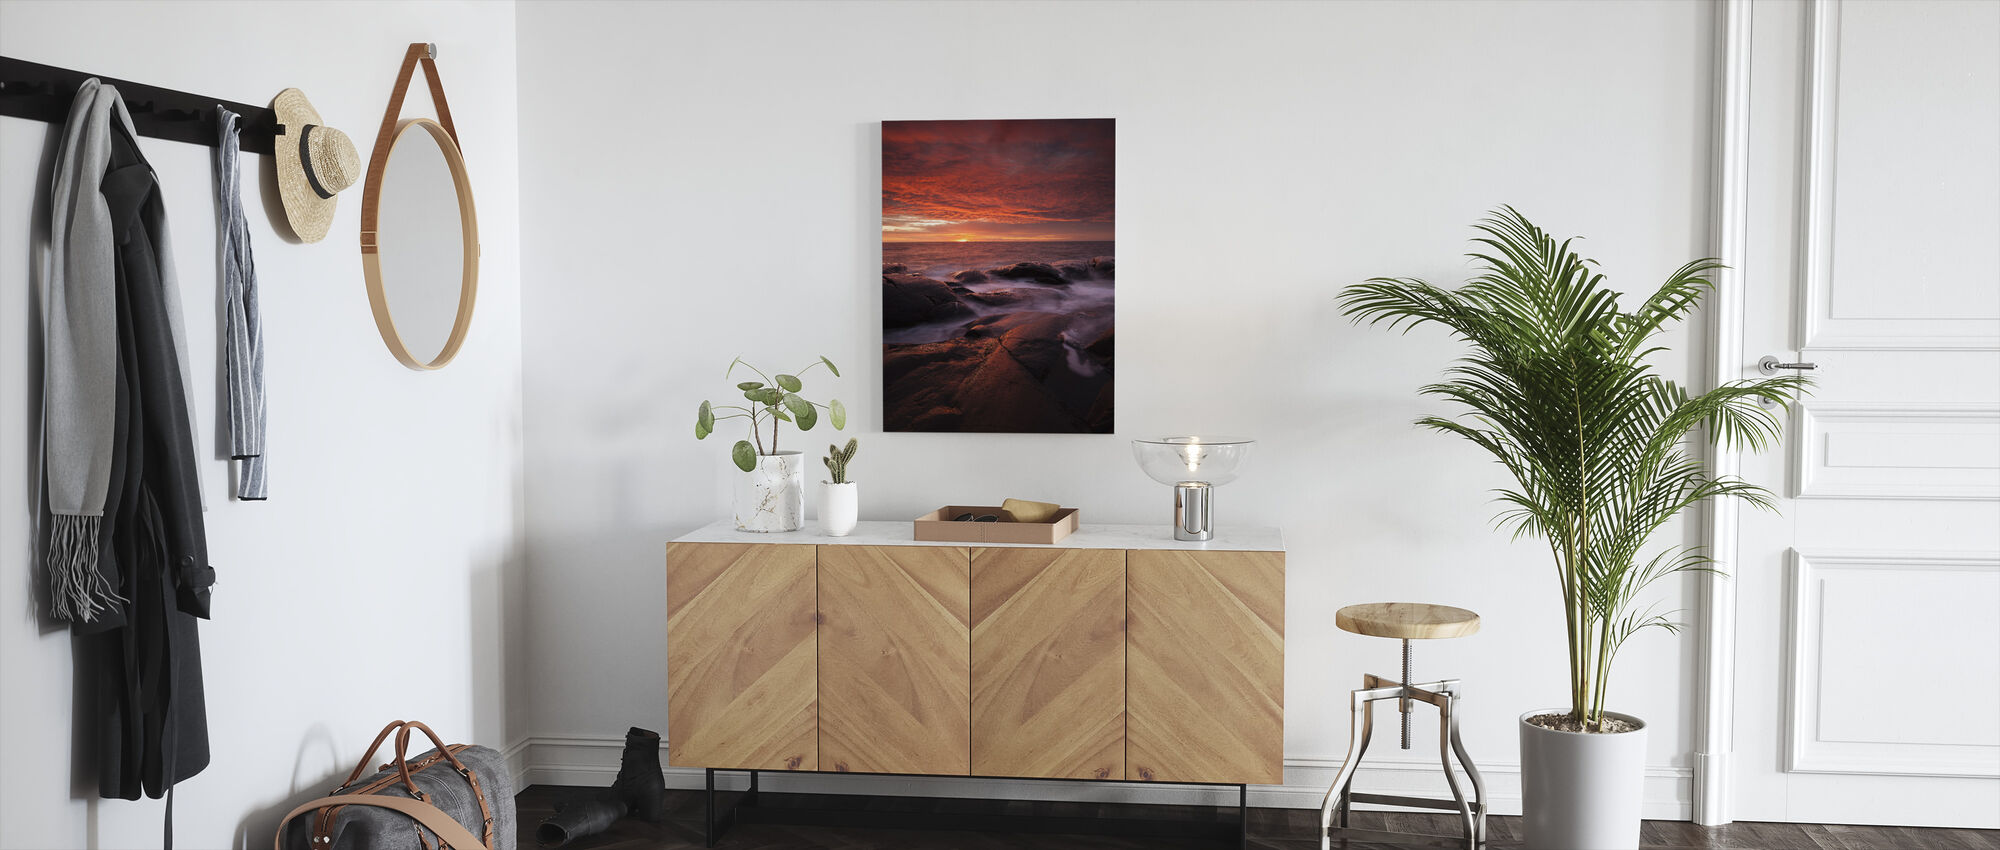 Ondergedompeld in de zon - Canvas print - Gang